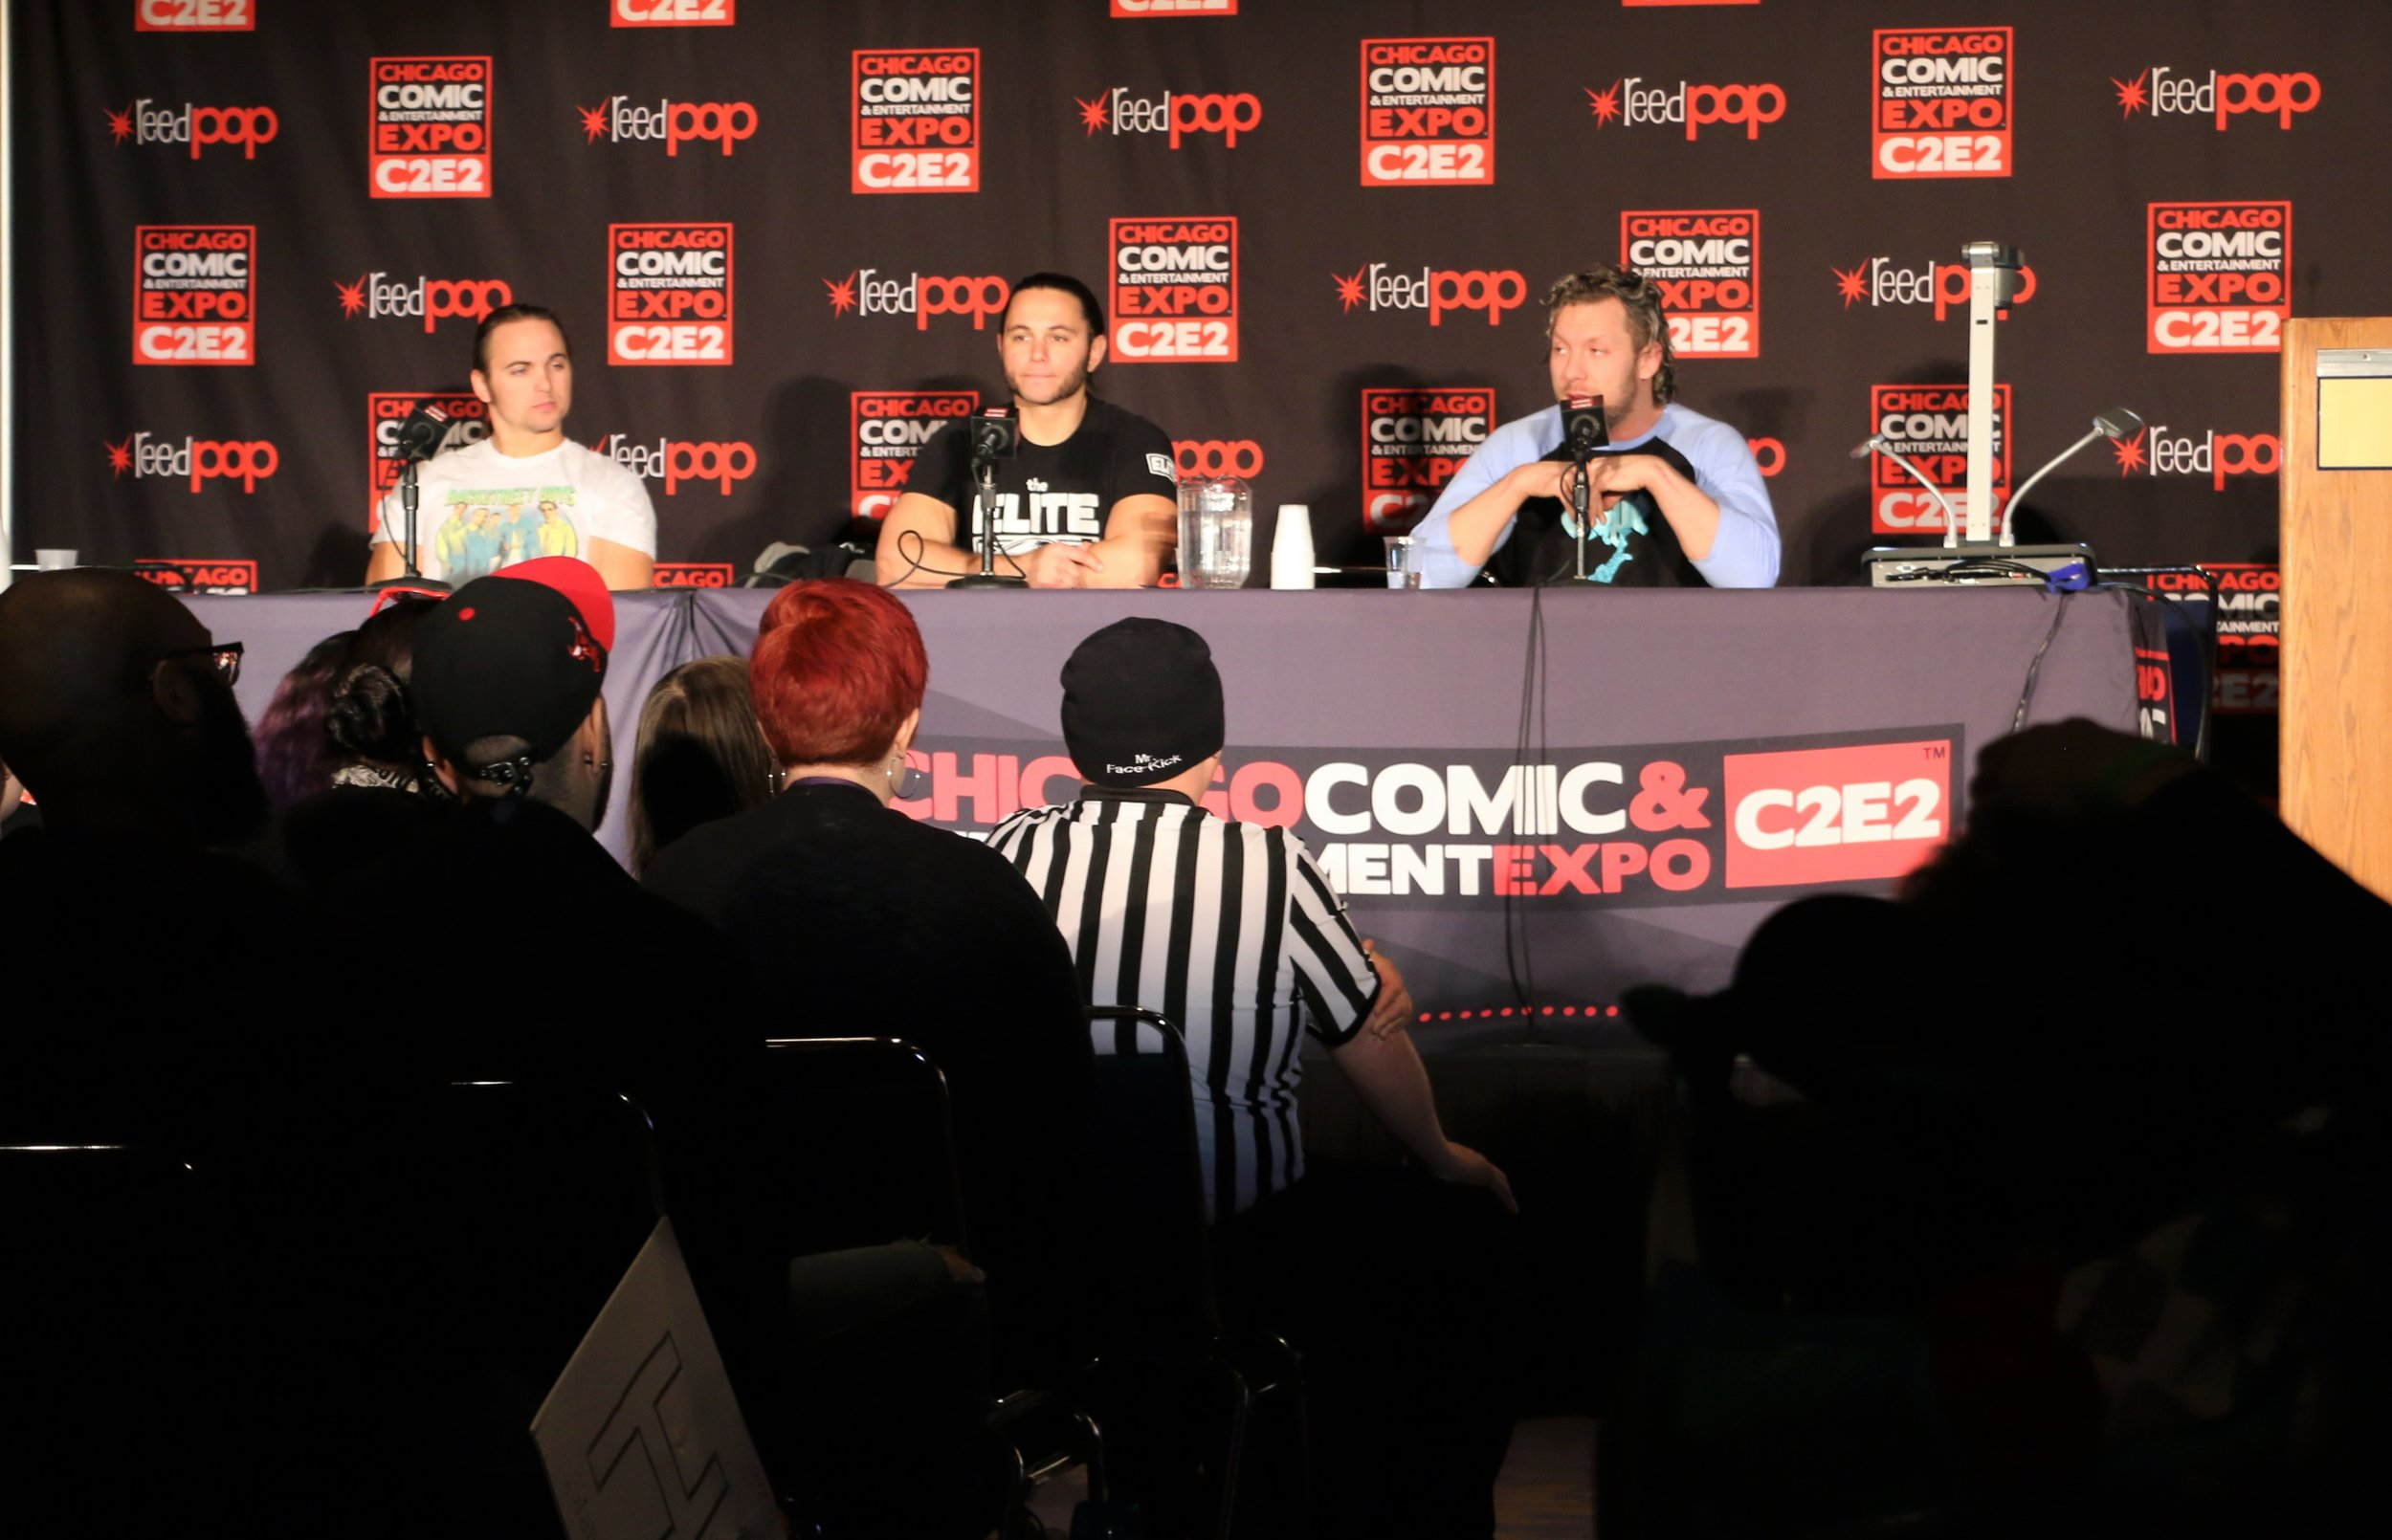 A packed conference room watches the Young Bucks and Kenny Omega during the All Elite Wrestling panel.